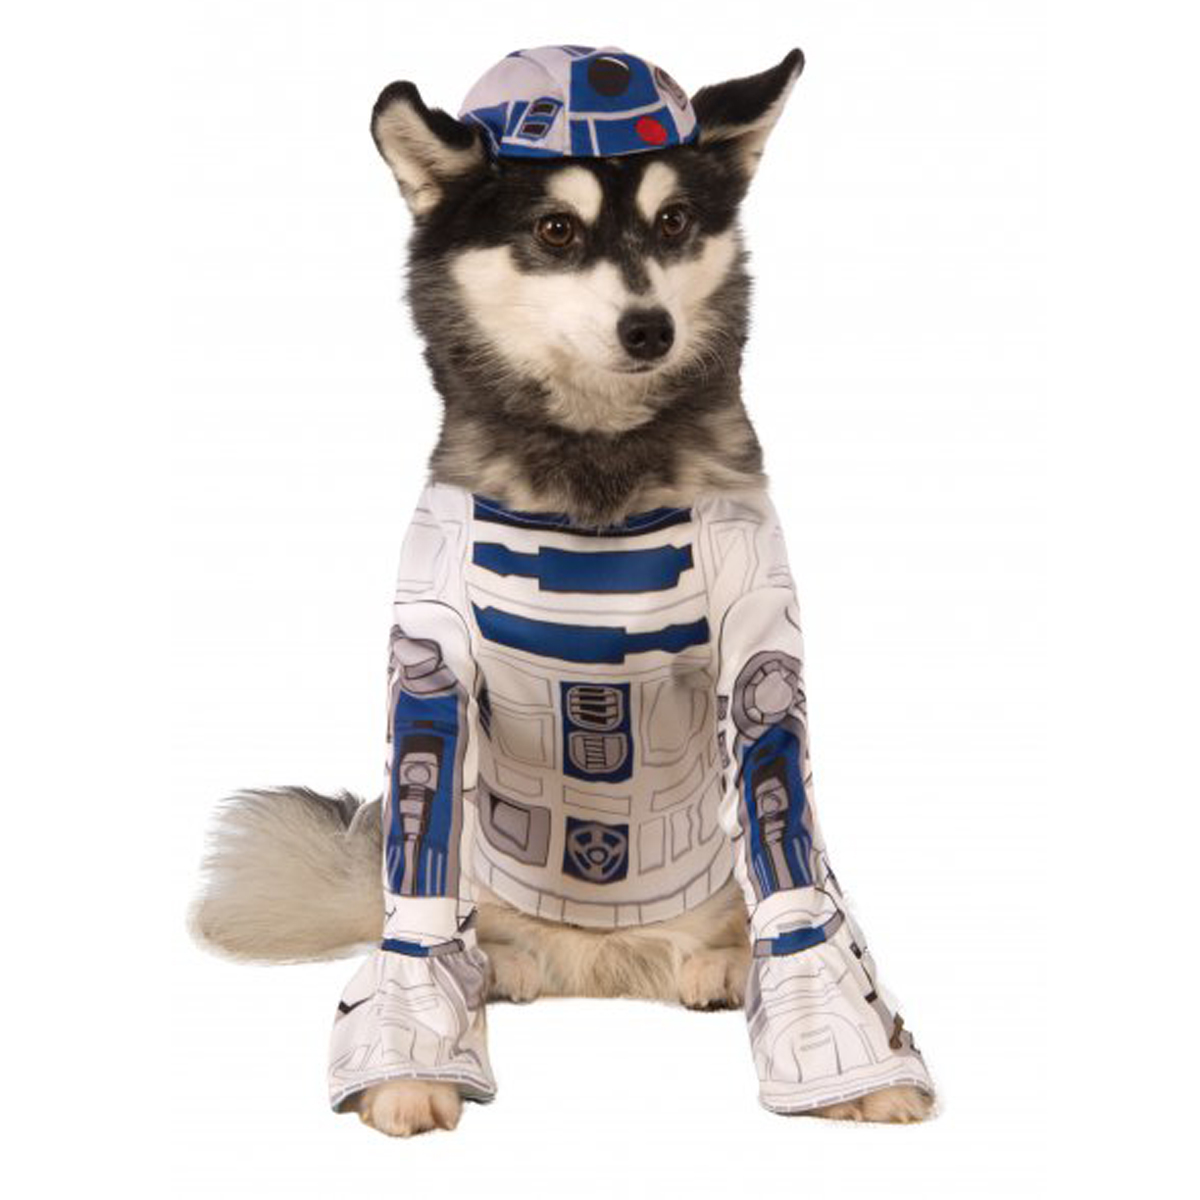 star wars r2-d2 dog costume with same day shipping | baxterboo